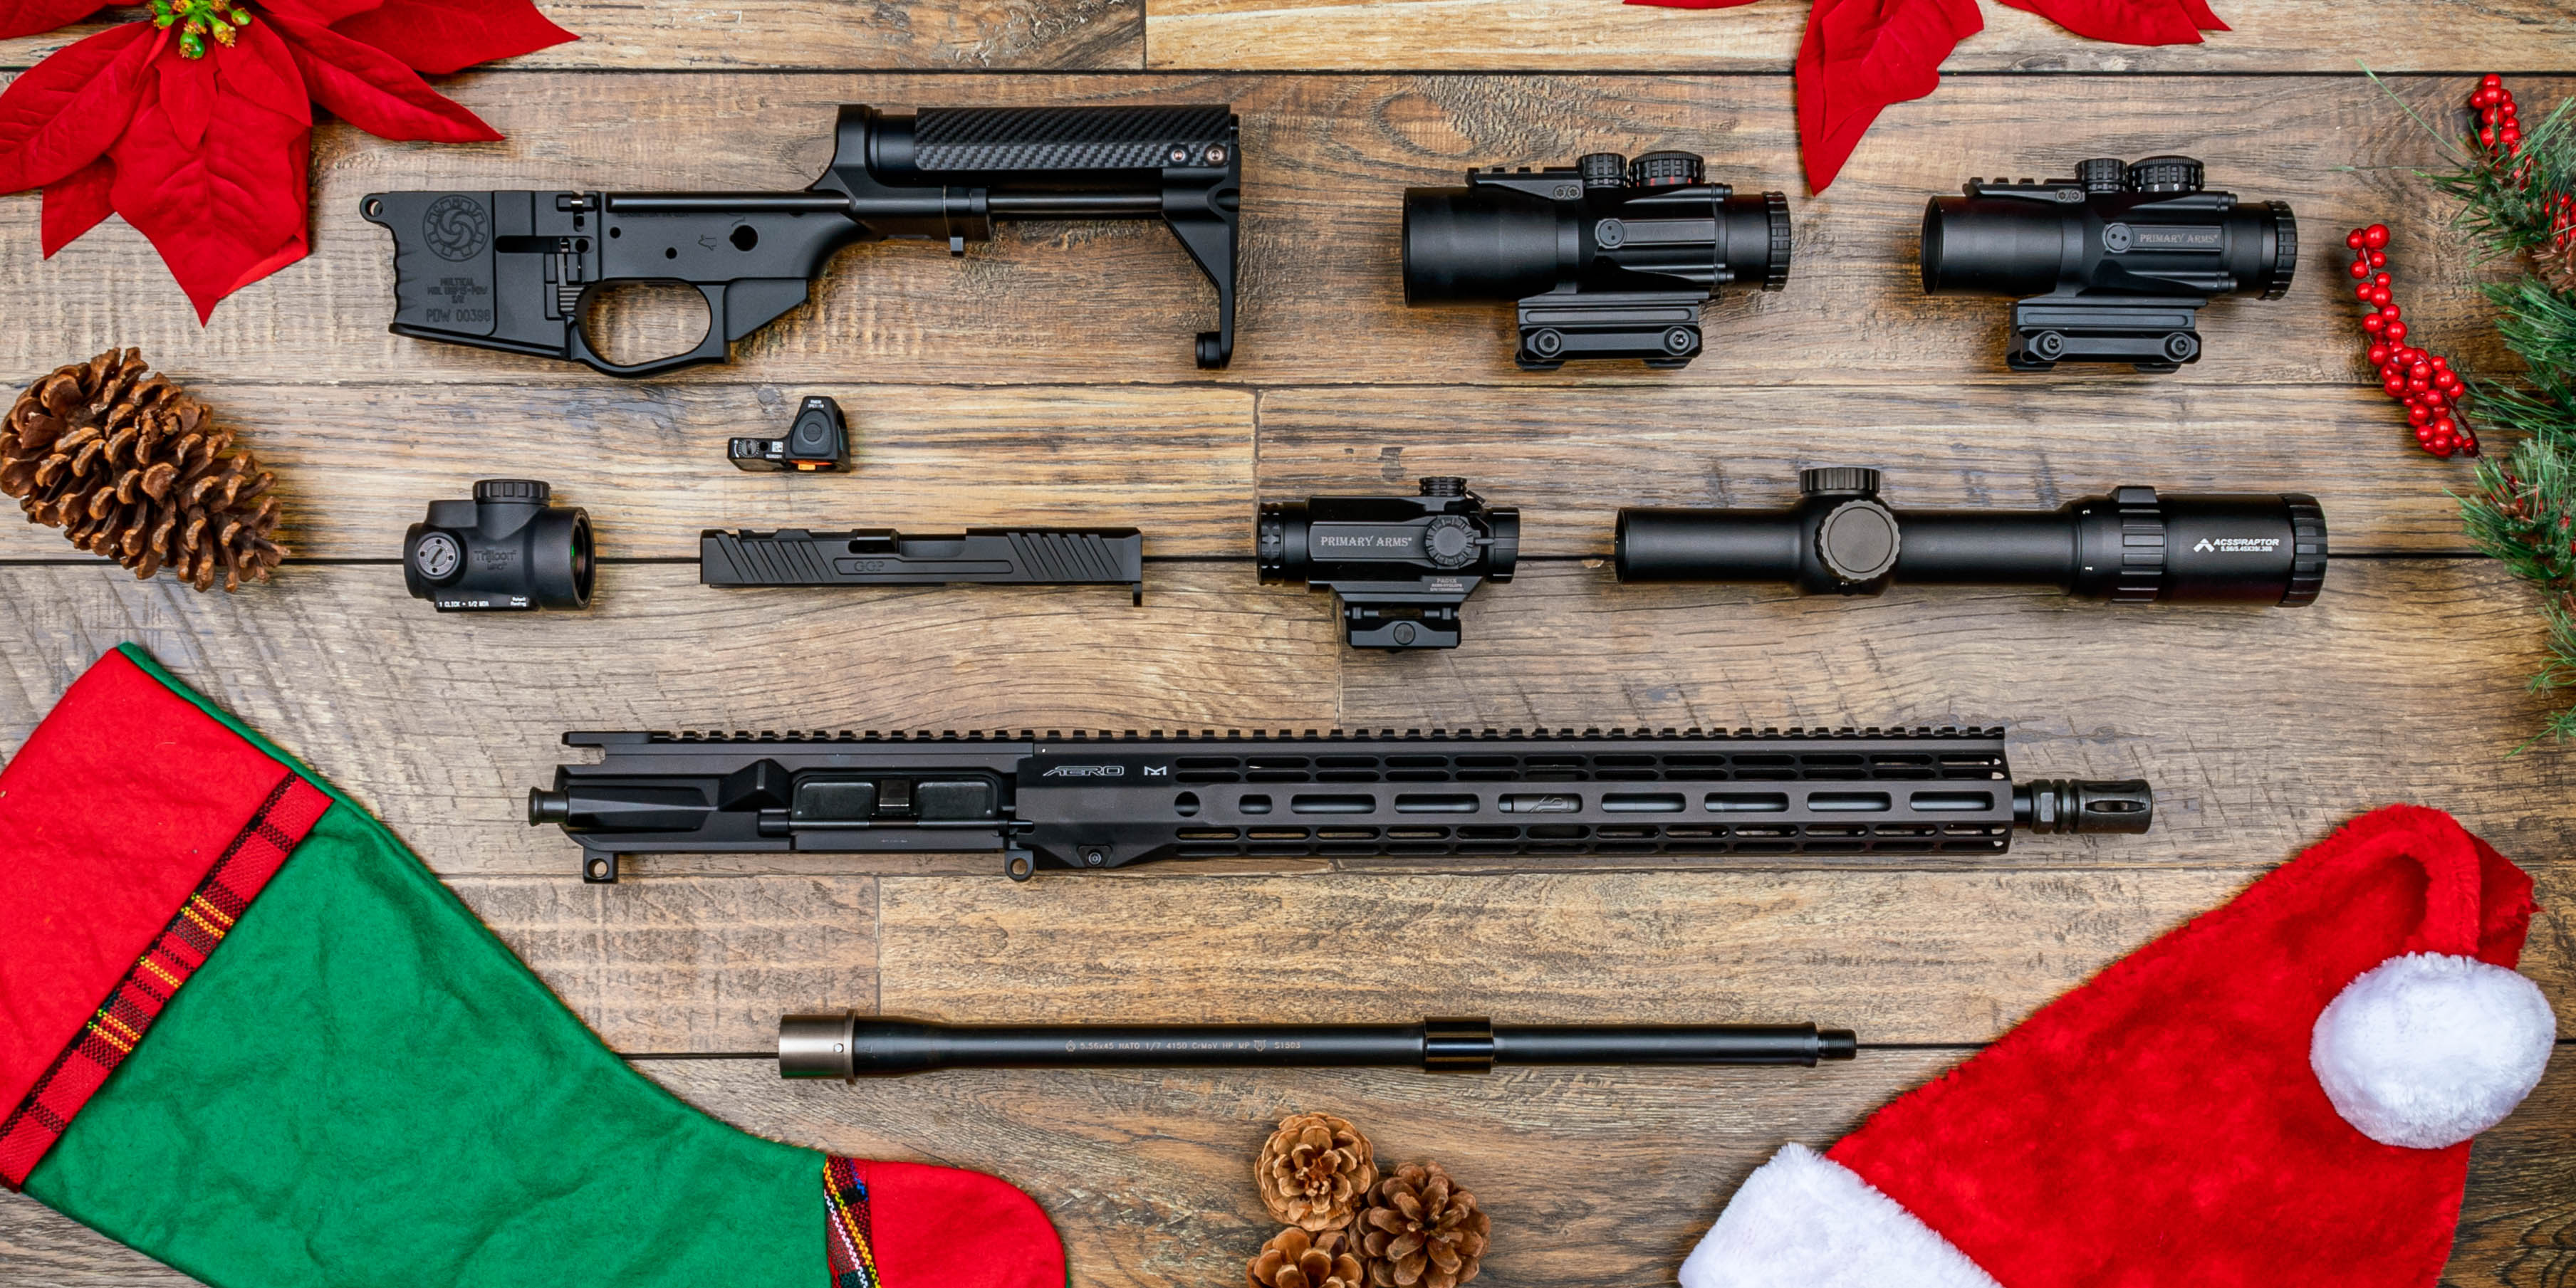 Primary Arms gifts for family including Ballistic Advantage, Primary Arms Optics, Trijicon, and Aero Precision.